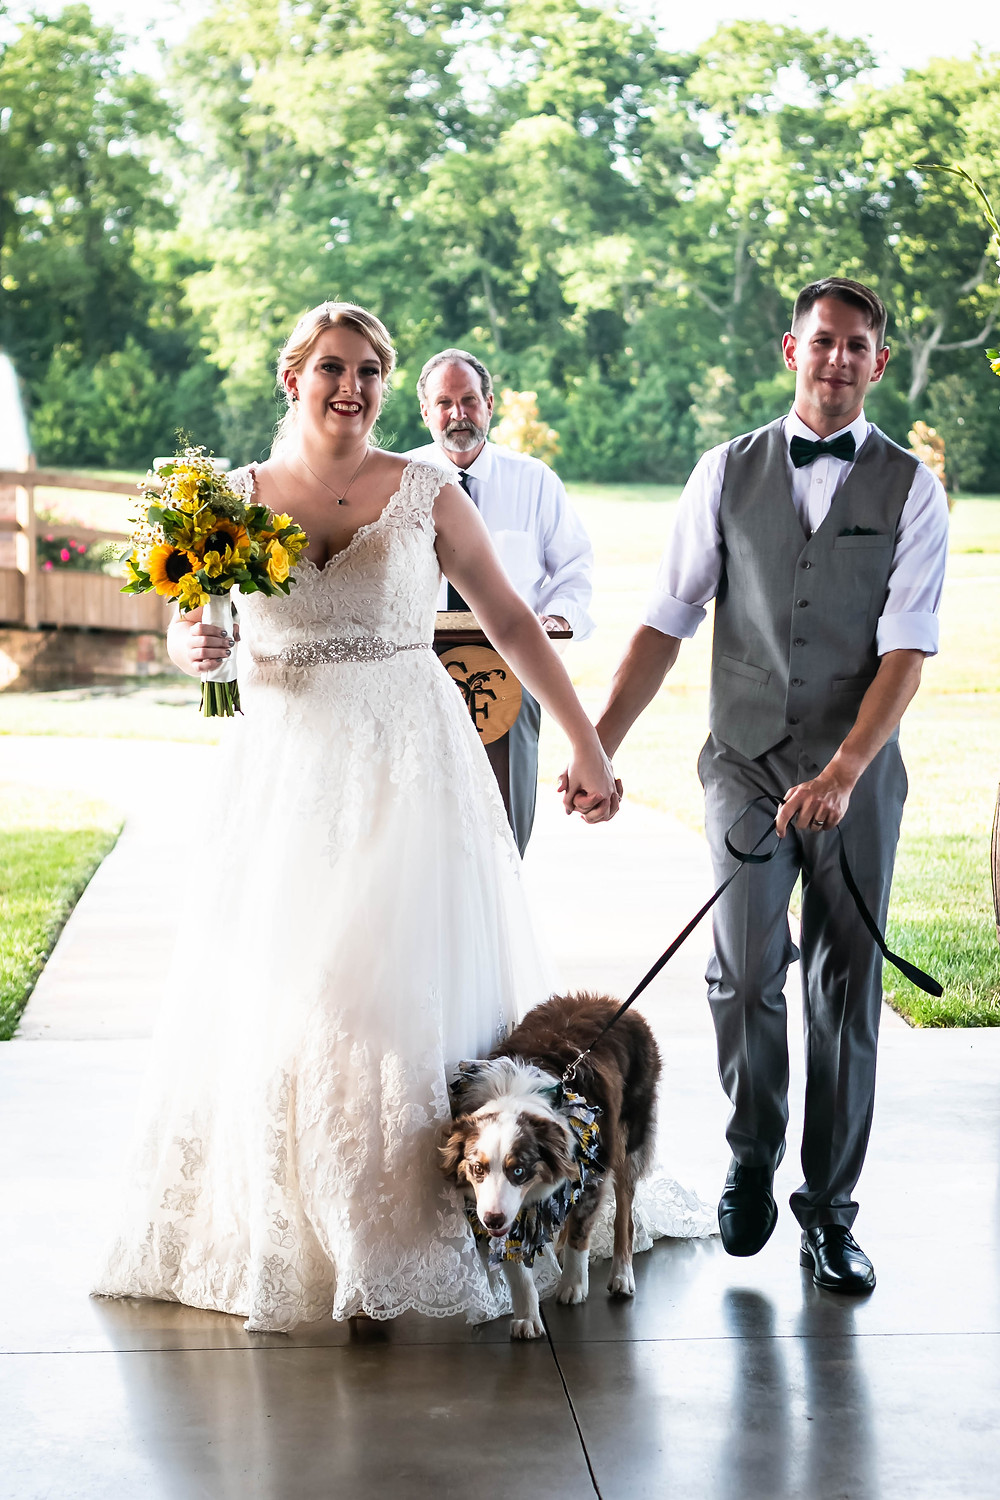 Husband and wife walk down the aisle at Sycamore Farm